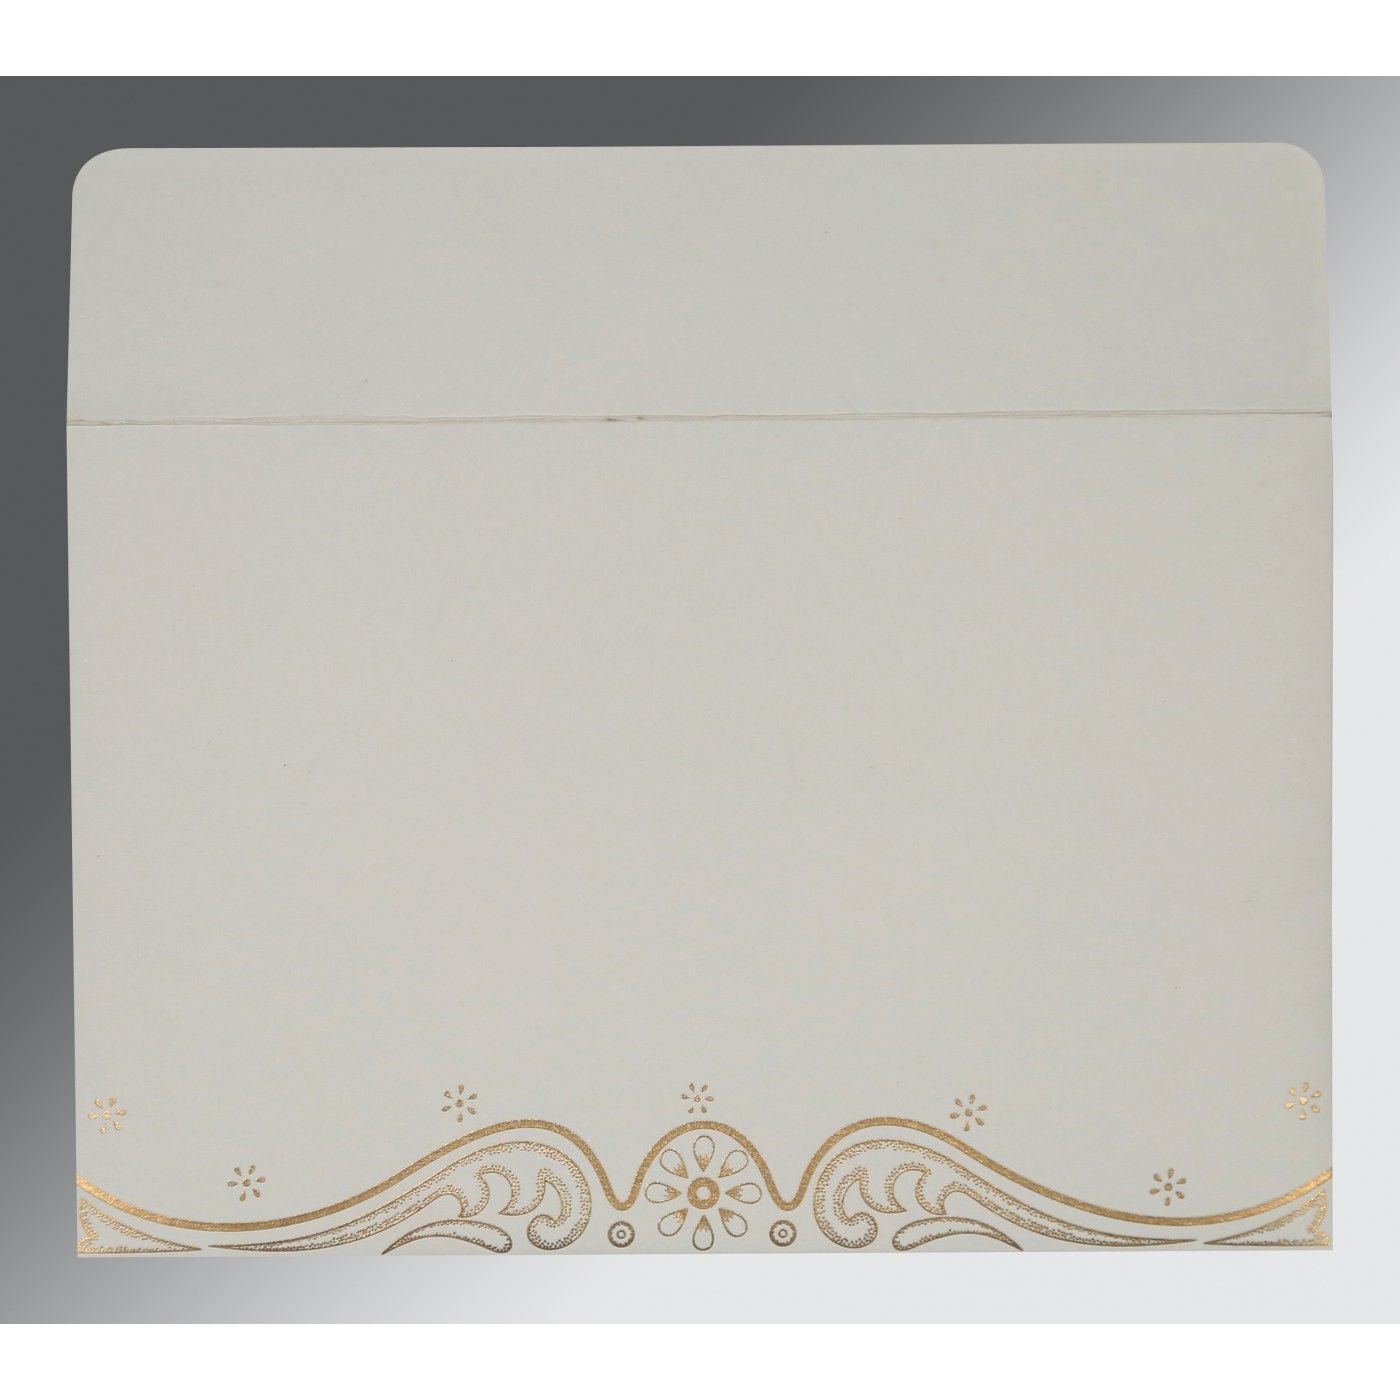 CHAMOISEE MATTE EMBOSSED WEDDING INVITATION : CI-8221I - IndianWeddingCards